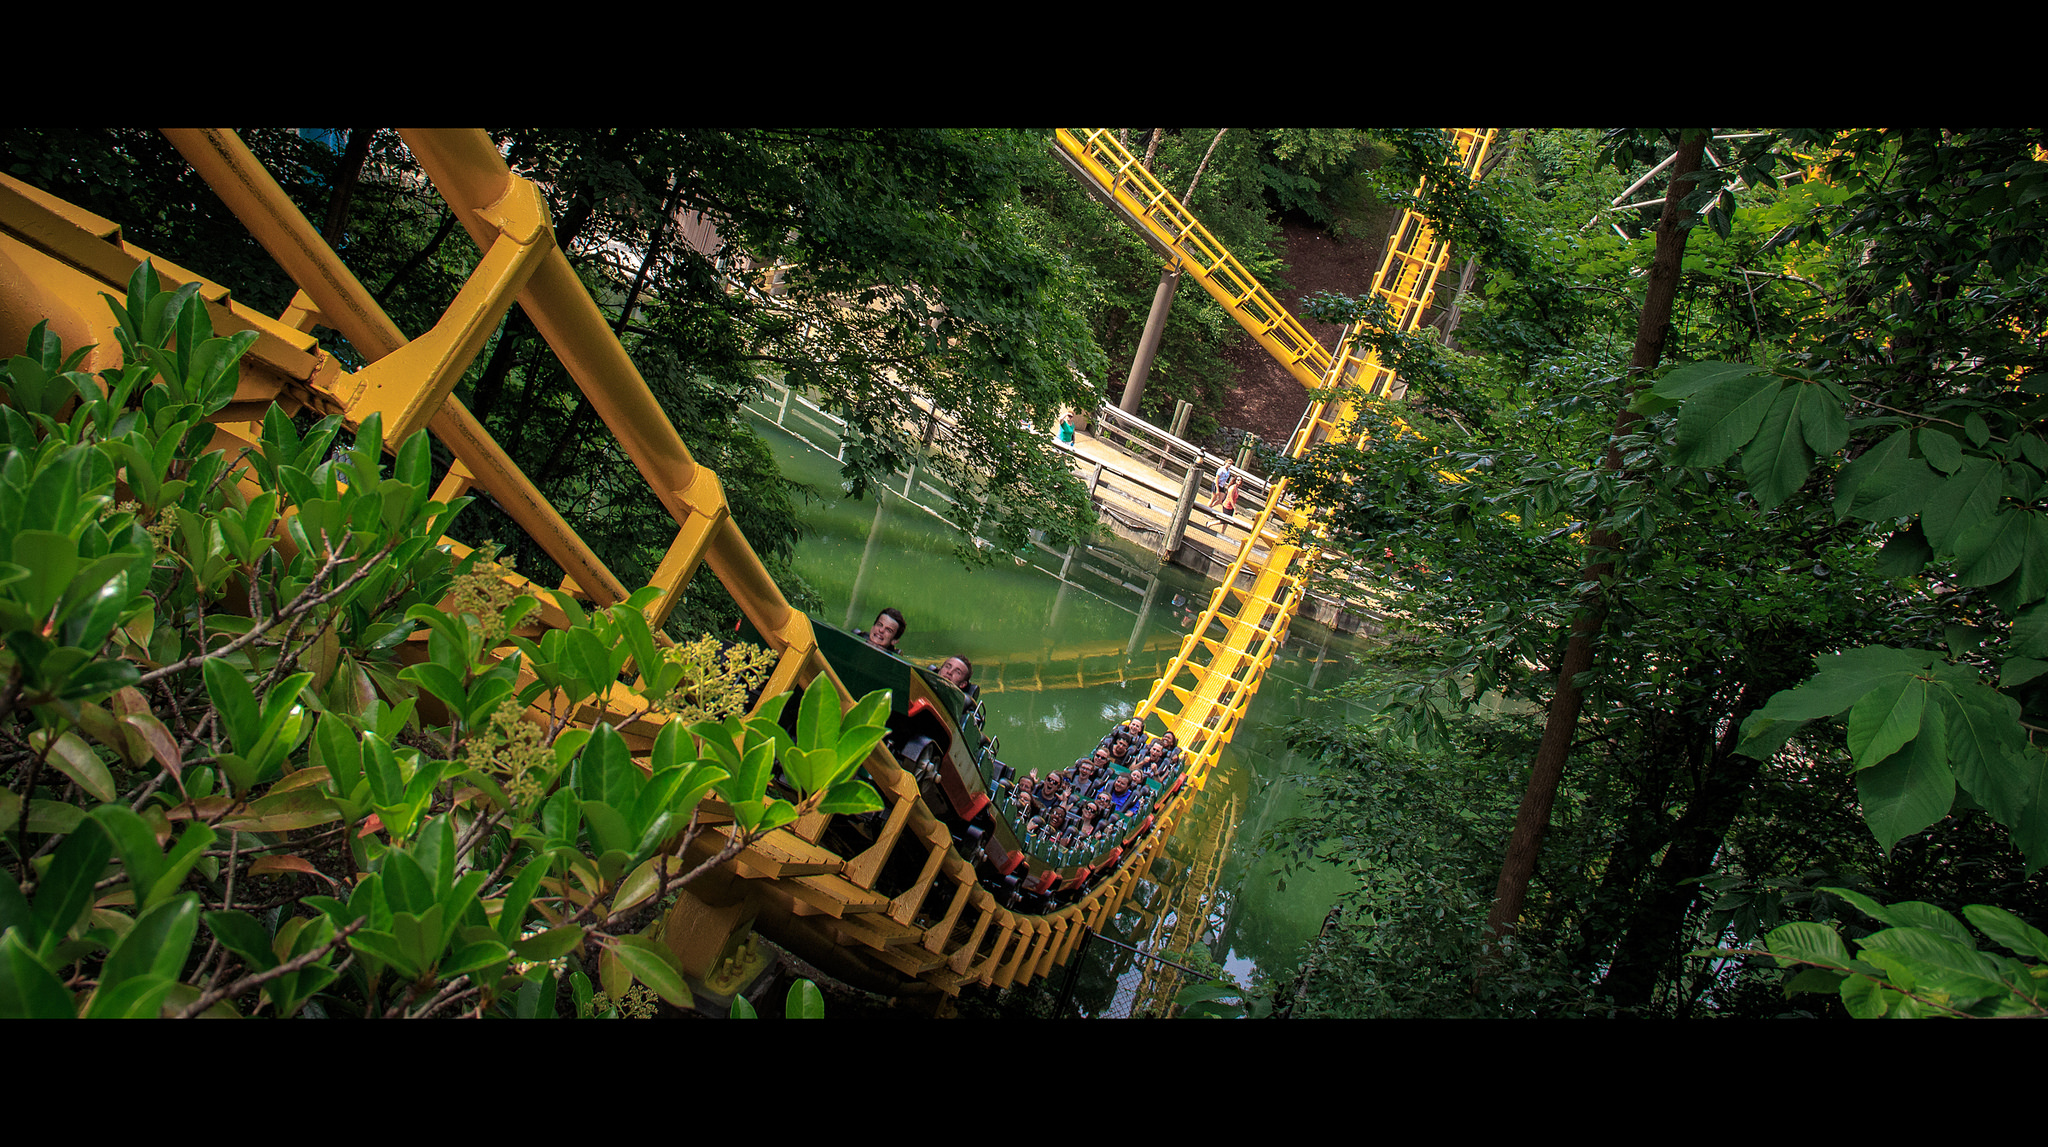 Howl O Scream Busch Gardens Williamsburg Wiki Garden Ftempo